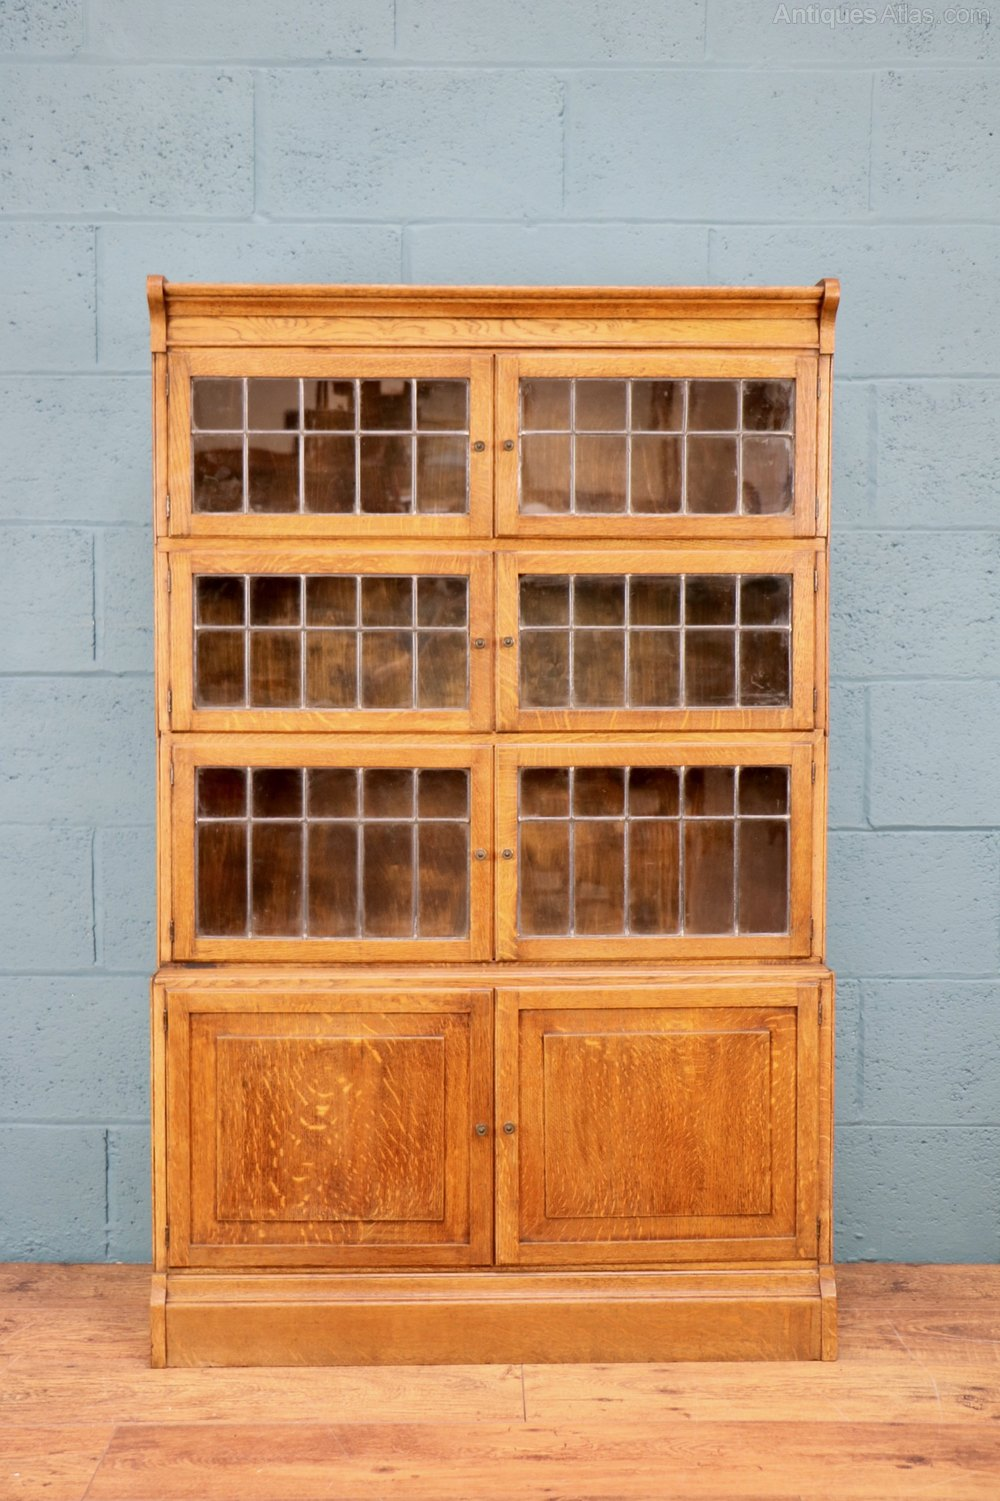 Minty Oxford Stacking Bookcase Antiques Atlas